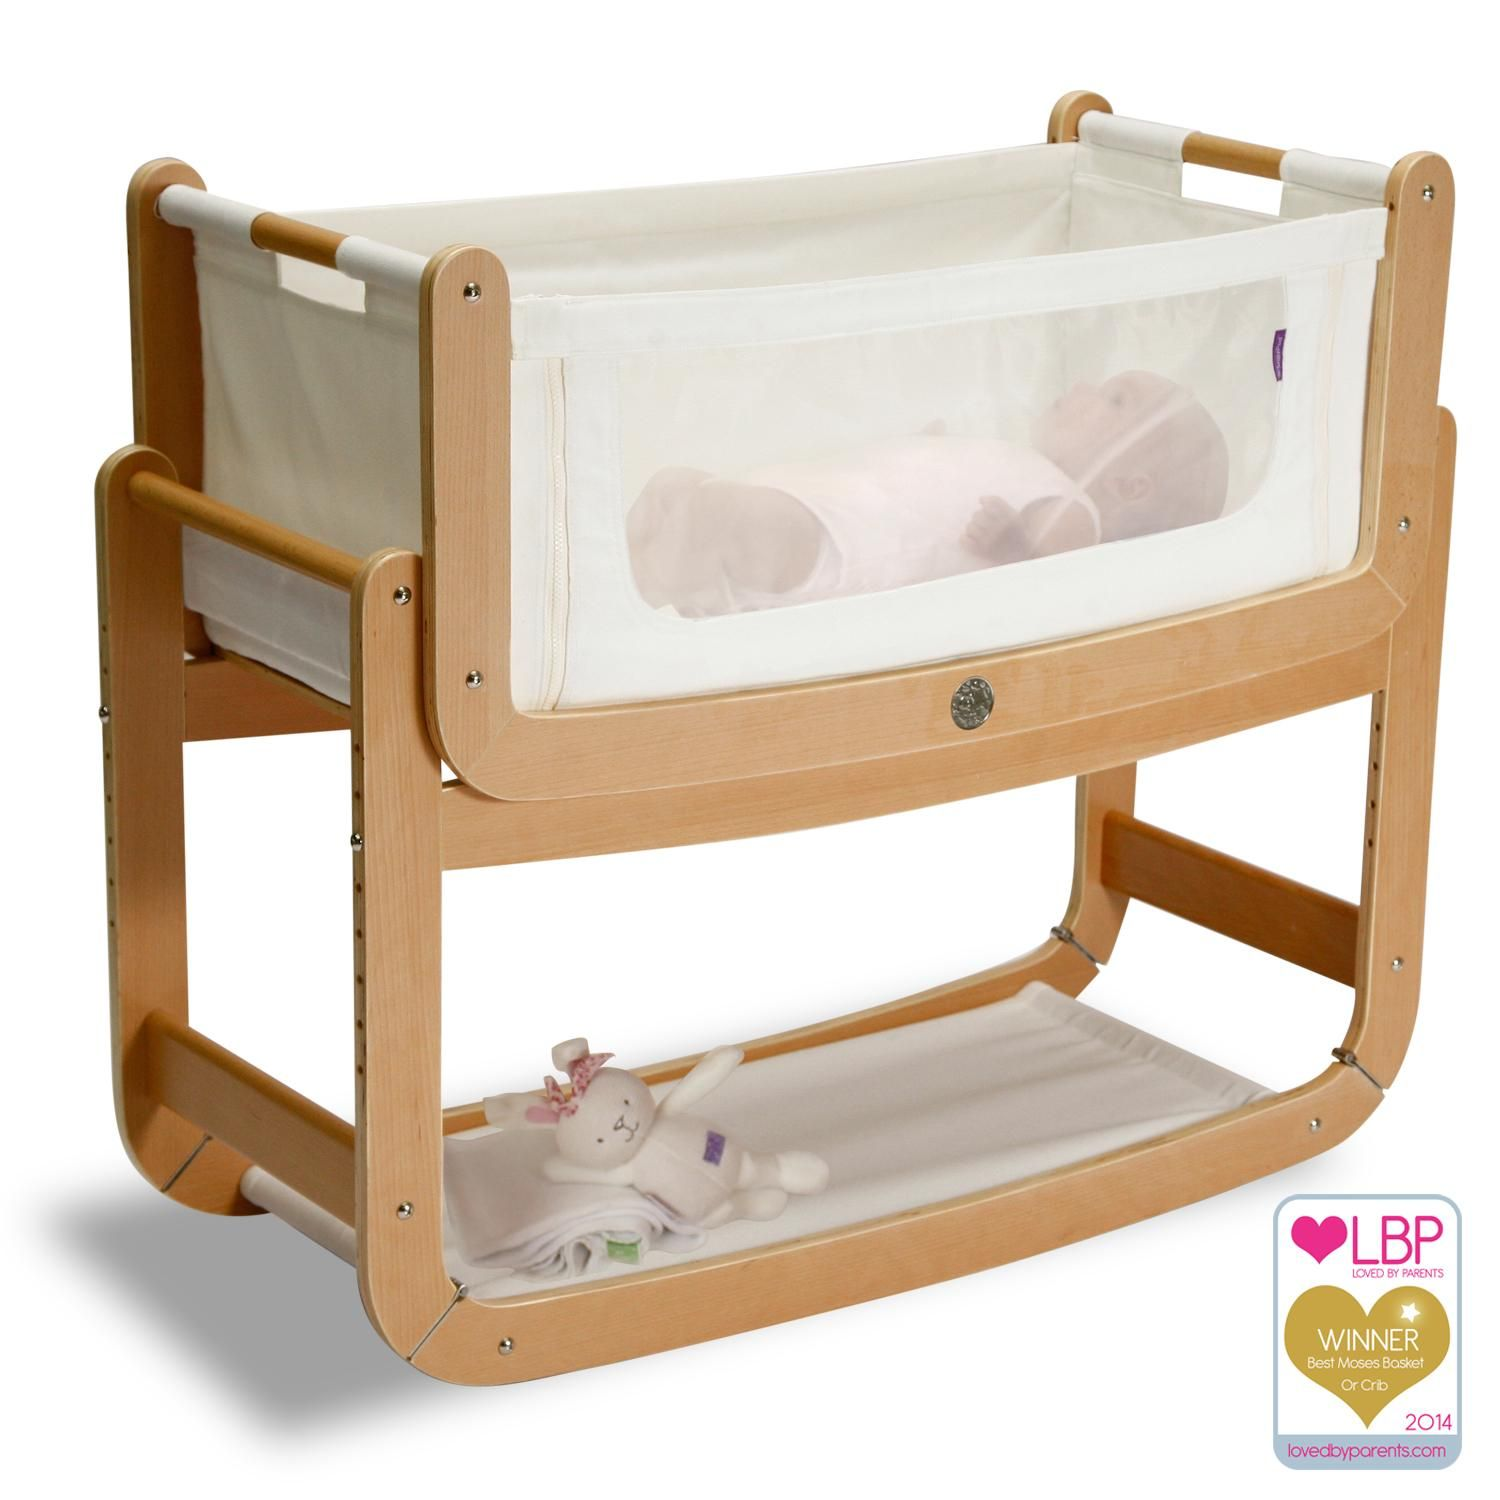 The Little Green Sheep Snuzpod Bedside Crib And Mattress